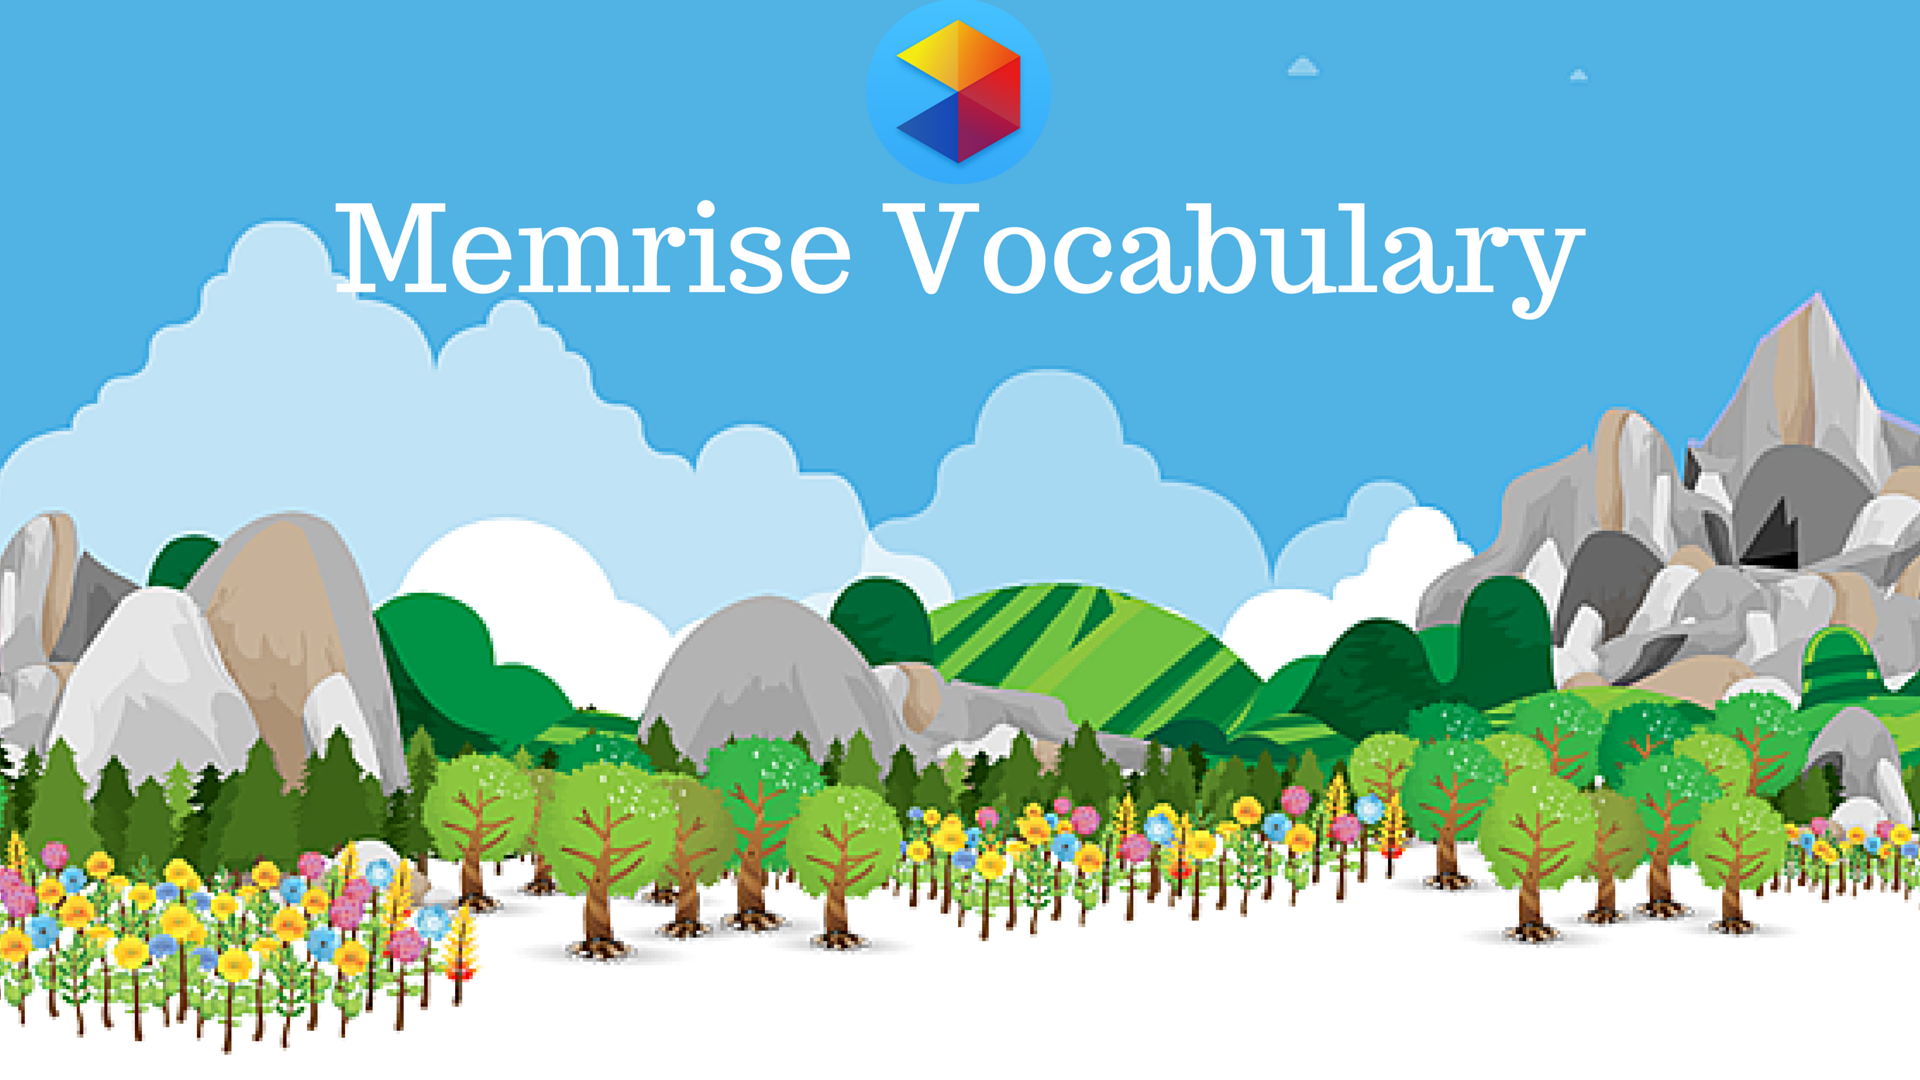 Memrise Vocabulary